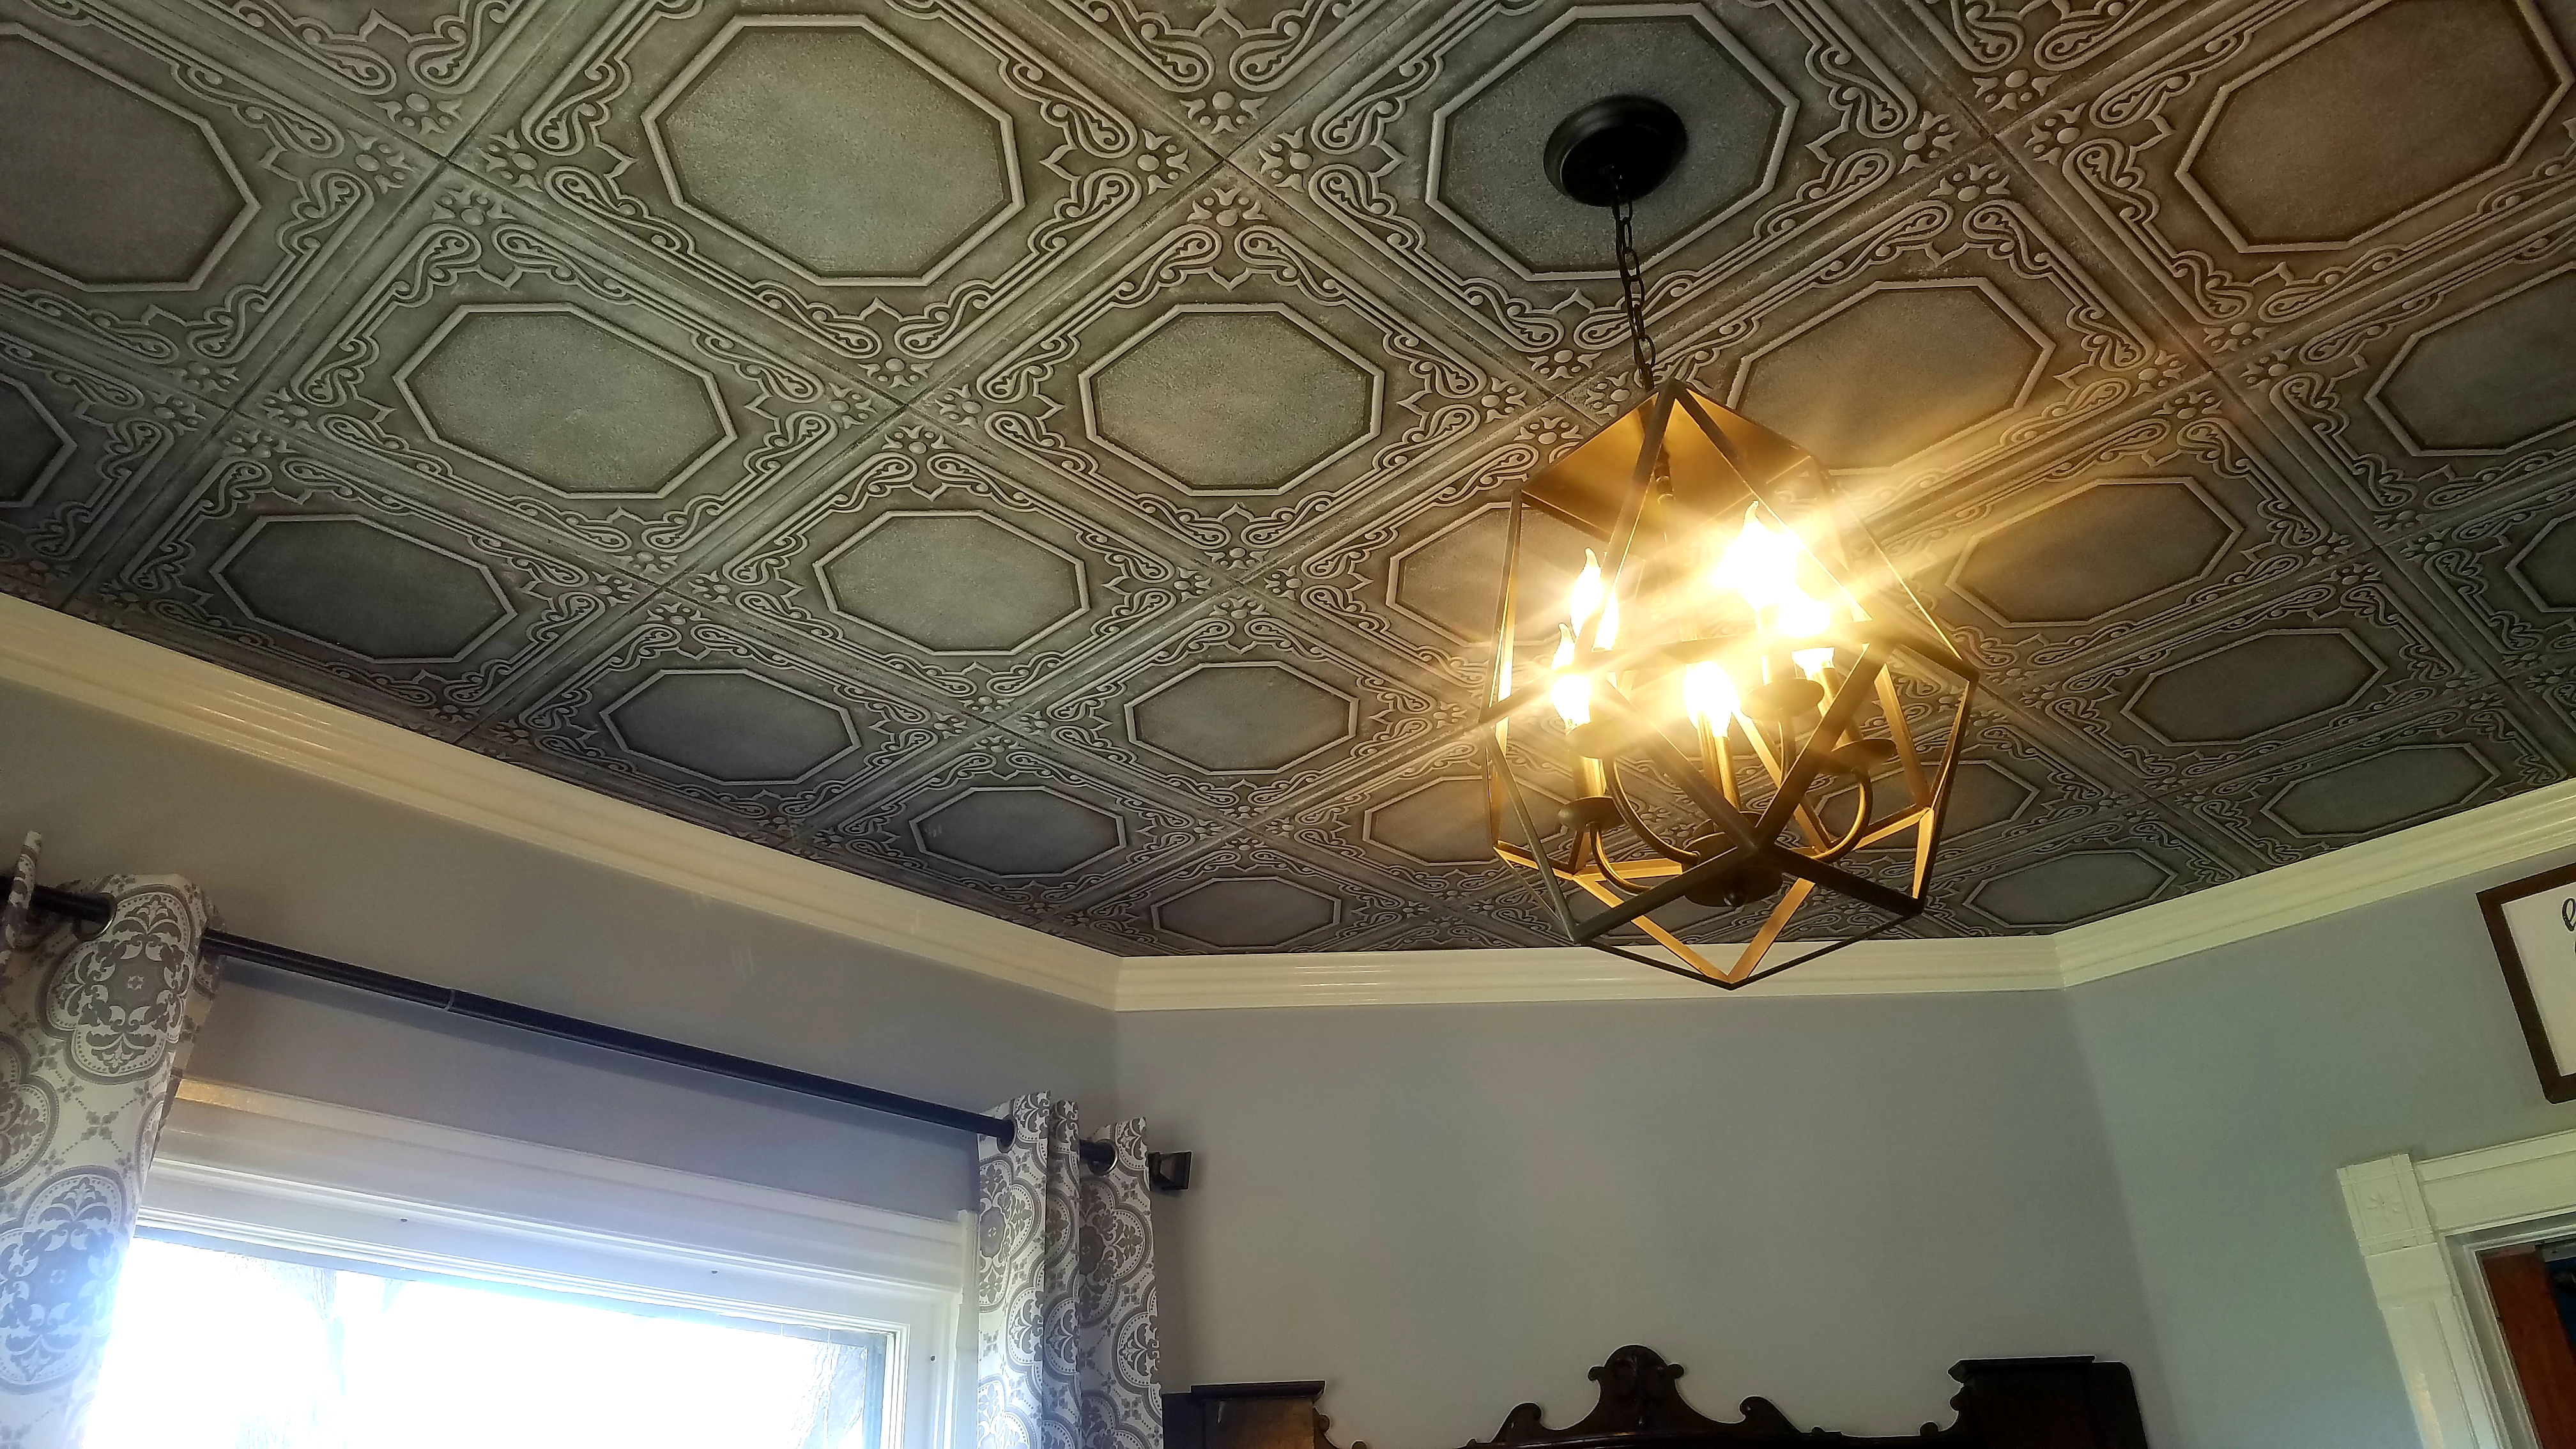 Living Room w/ Ceiling Tiles and Crown - Photo Contest